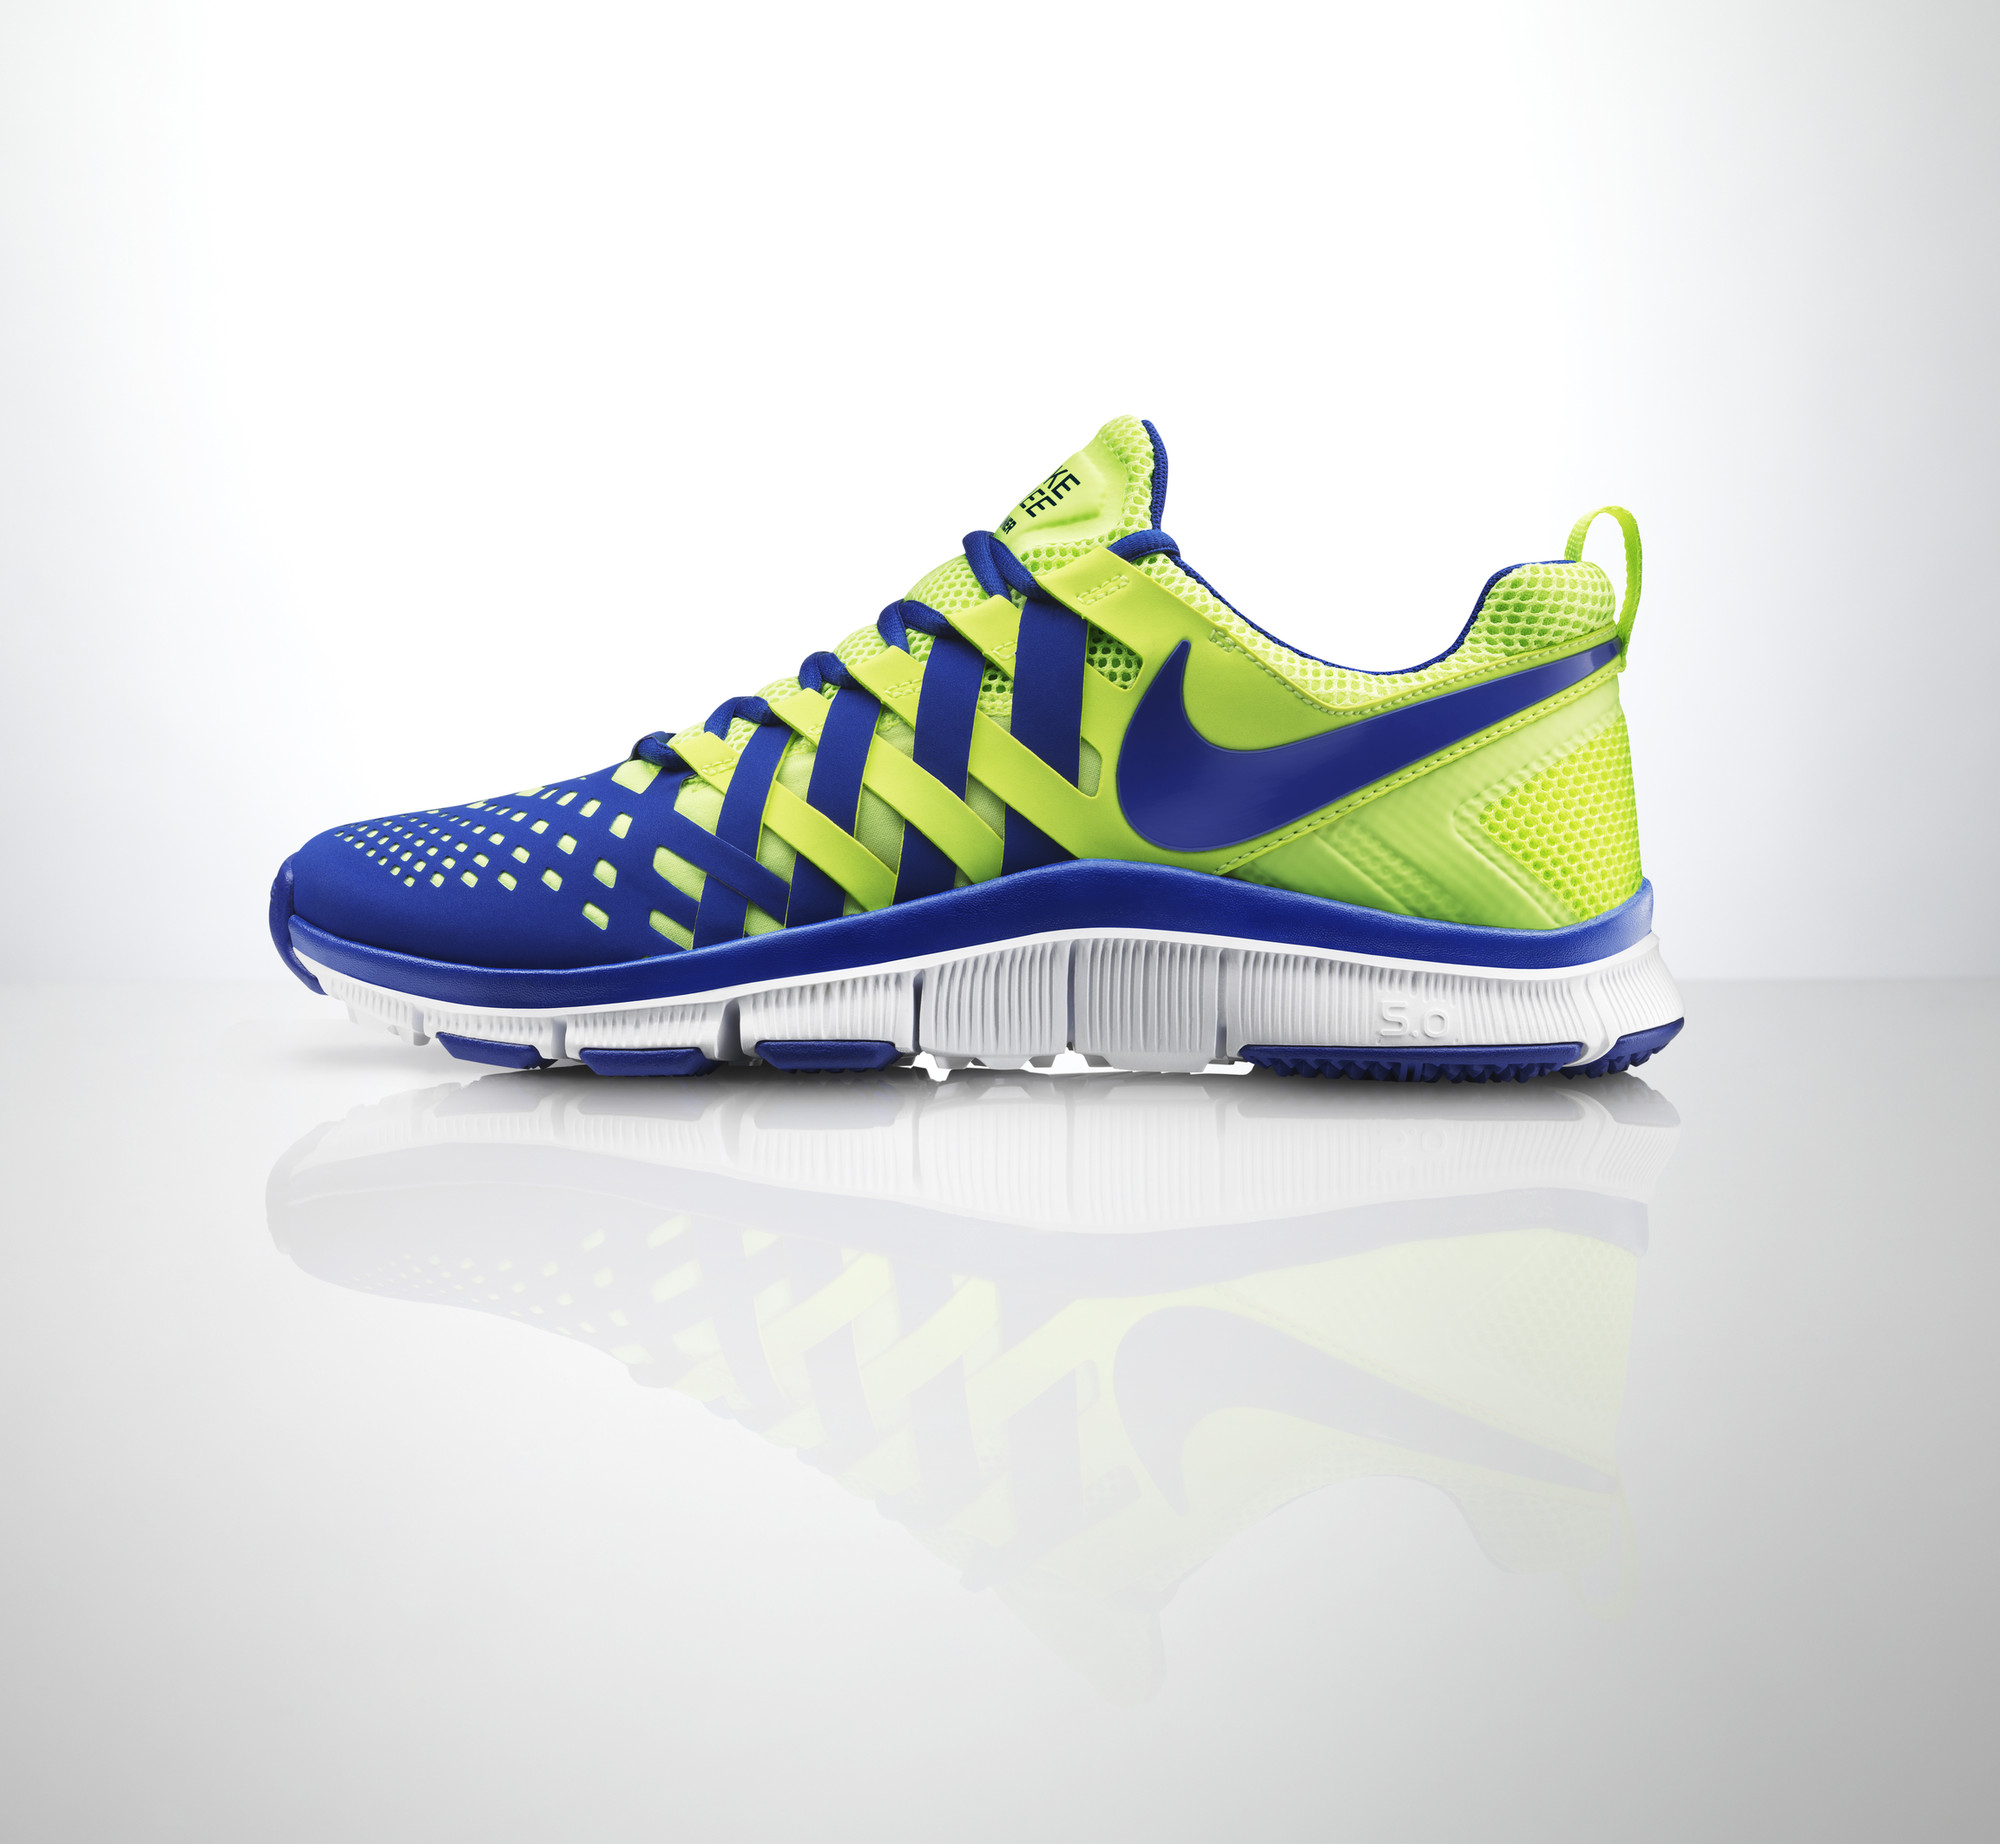 LO · HI. Introducing the Nike Free Trainer 5.0